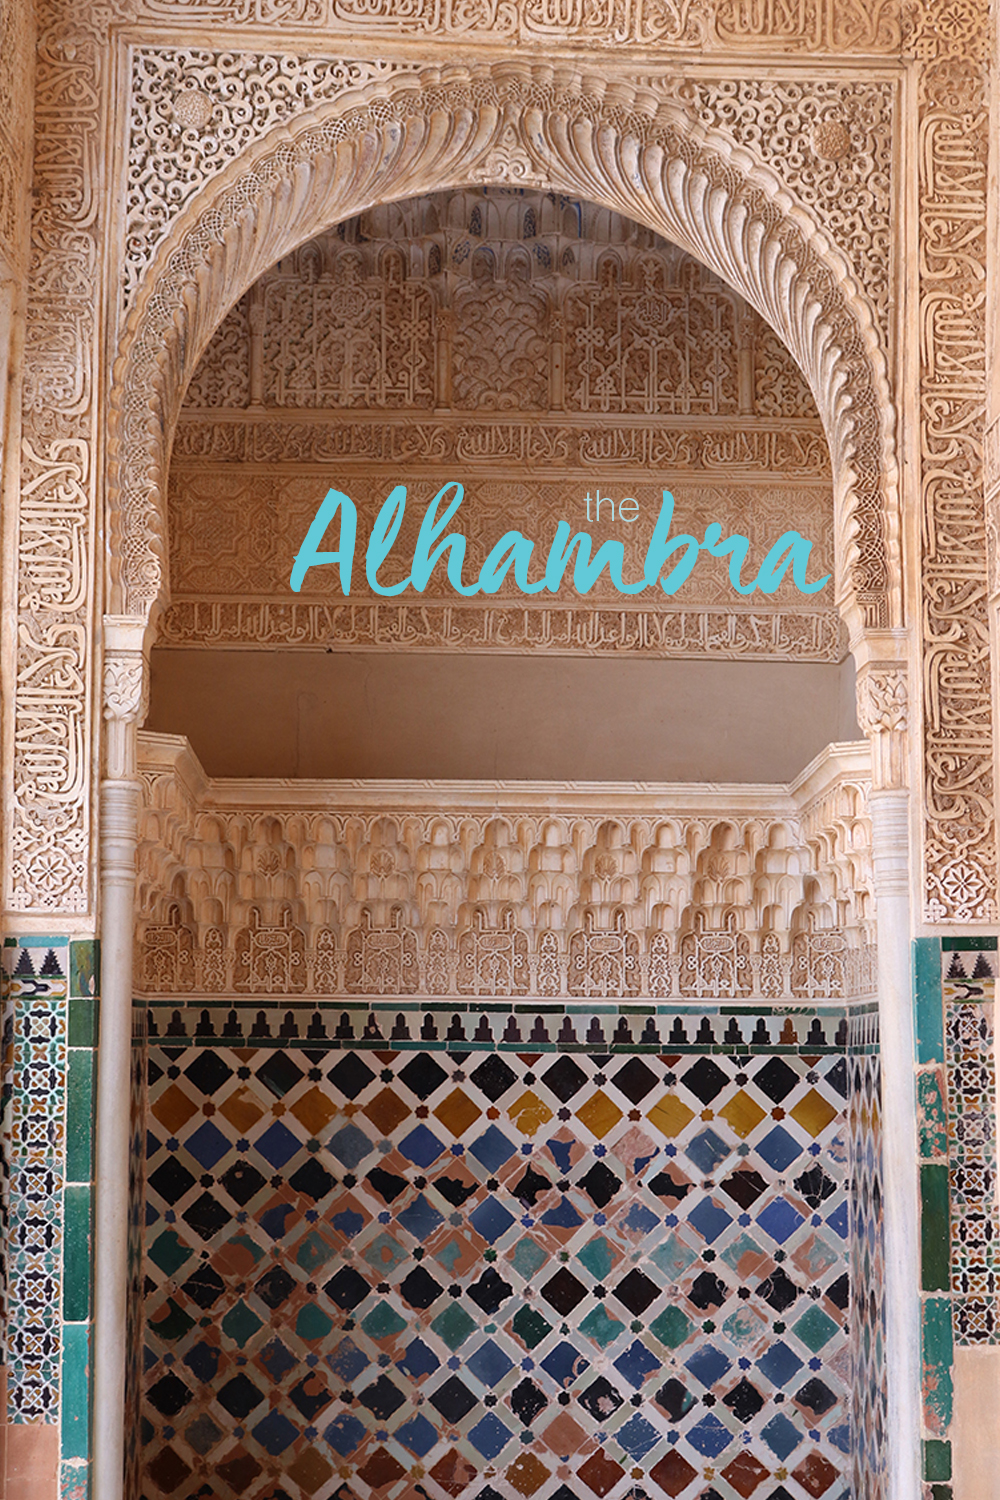 Highlight: The Alhambra